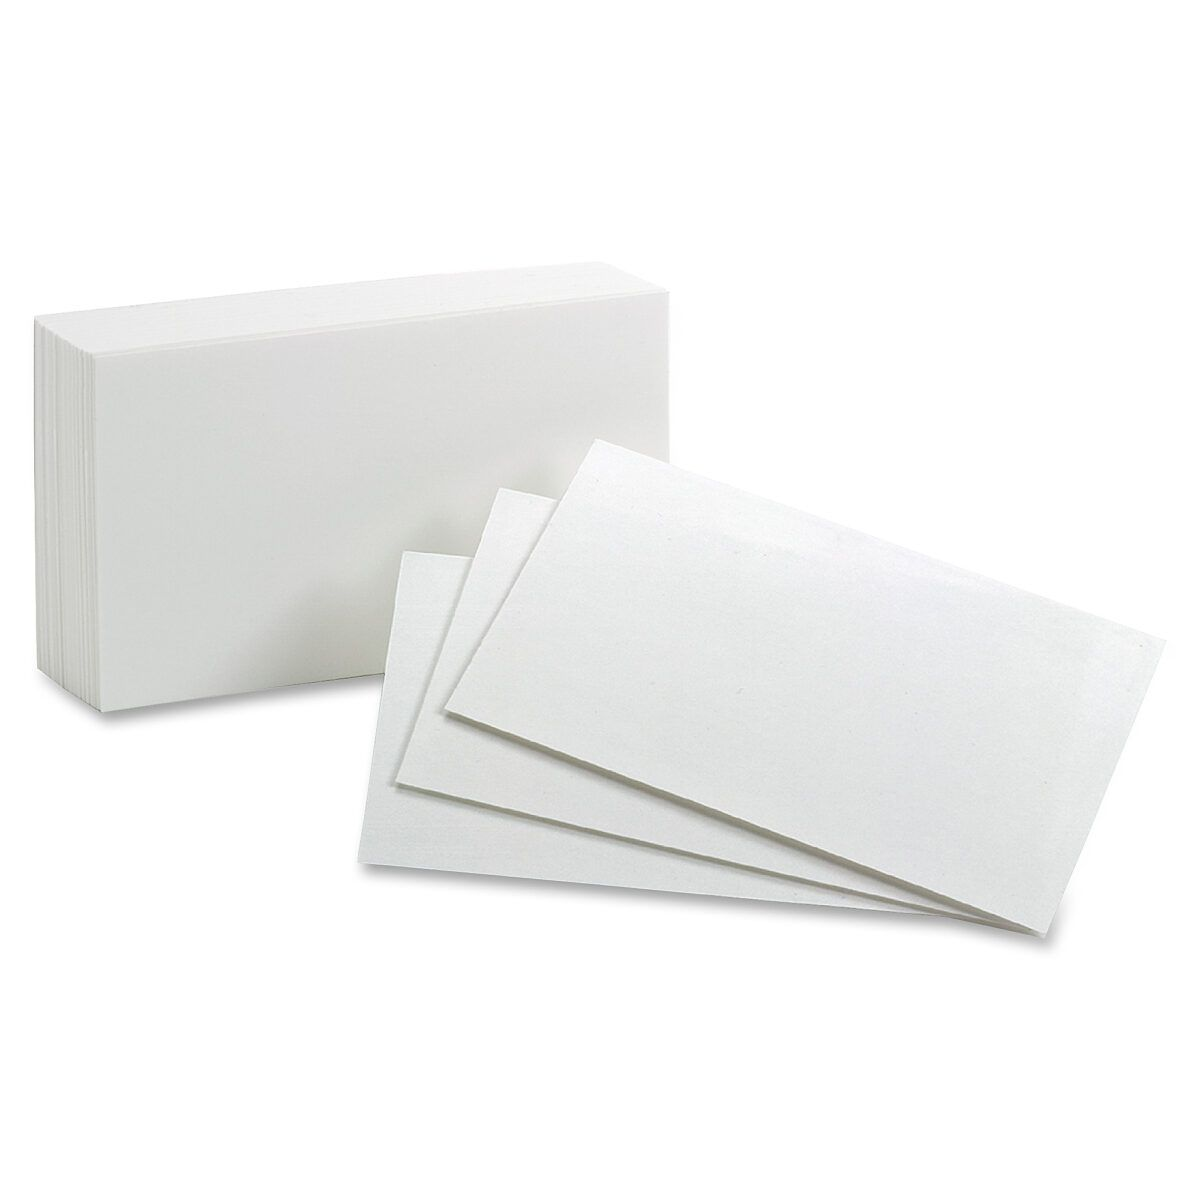 Oxford Blank Index Card Intended For 3x5 Blank Index Card Template Card Template Professional Templates Index Cards